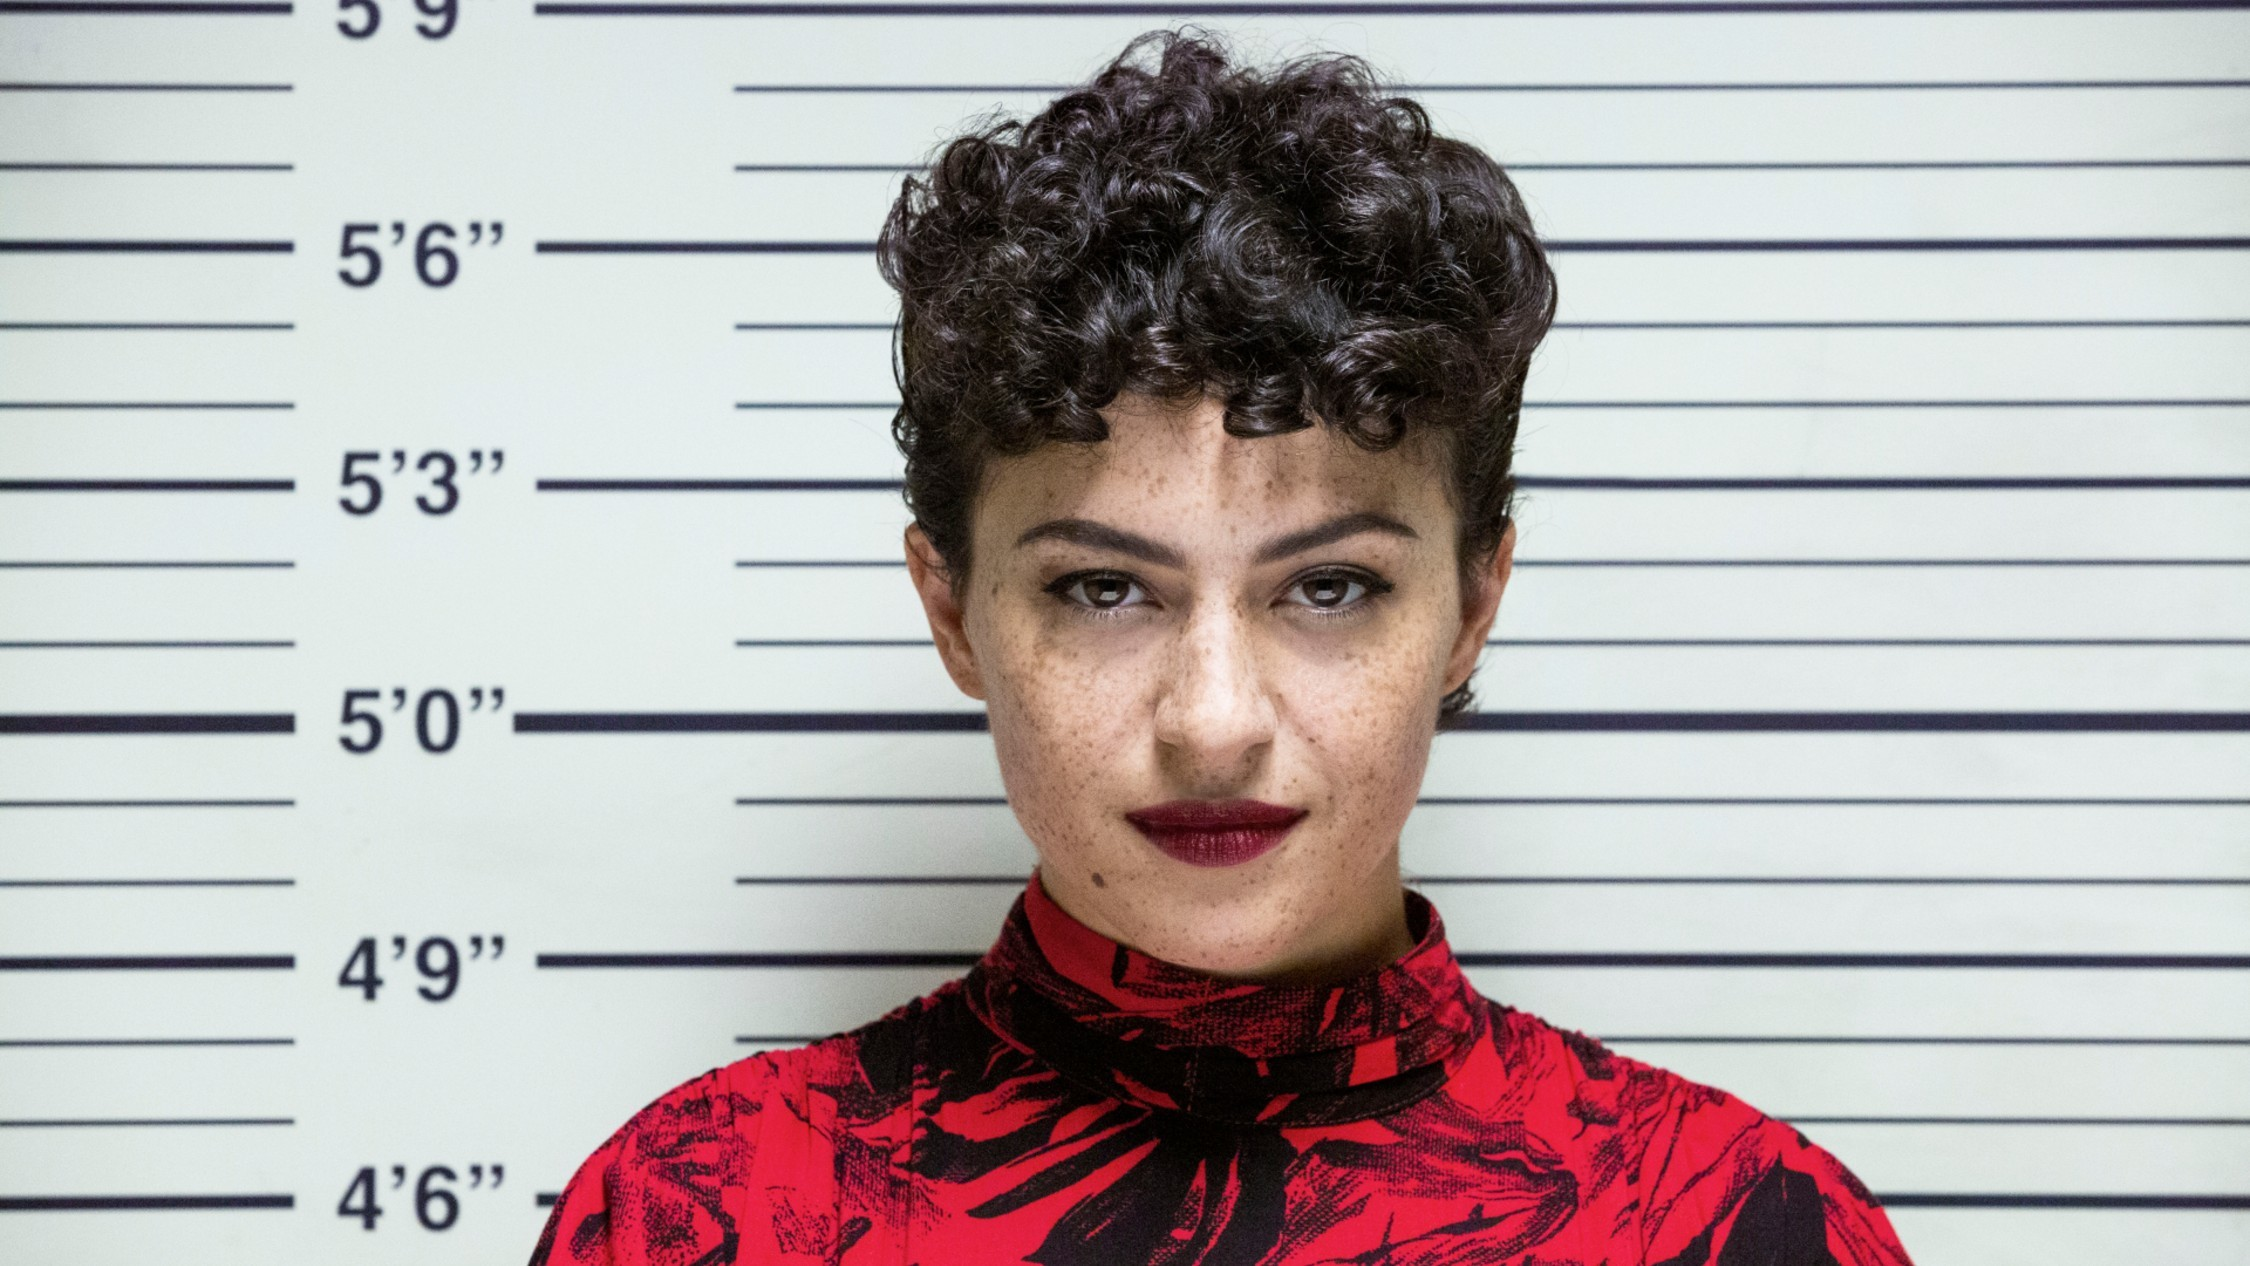 Alia Shawcat in front of a police booking height chart